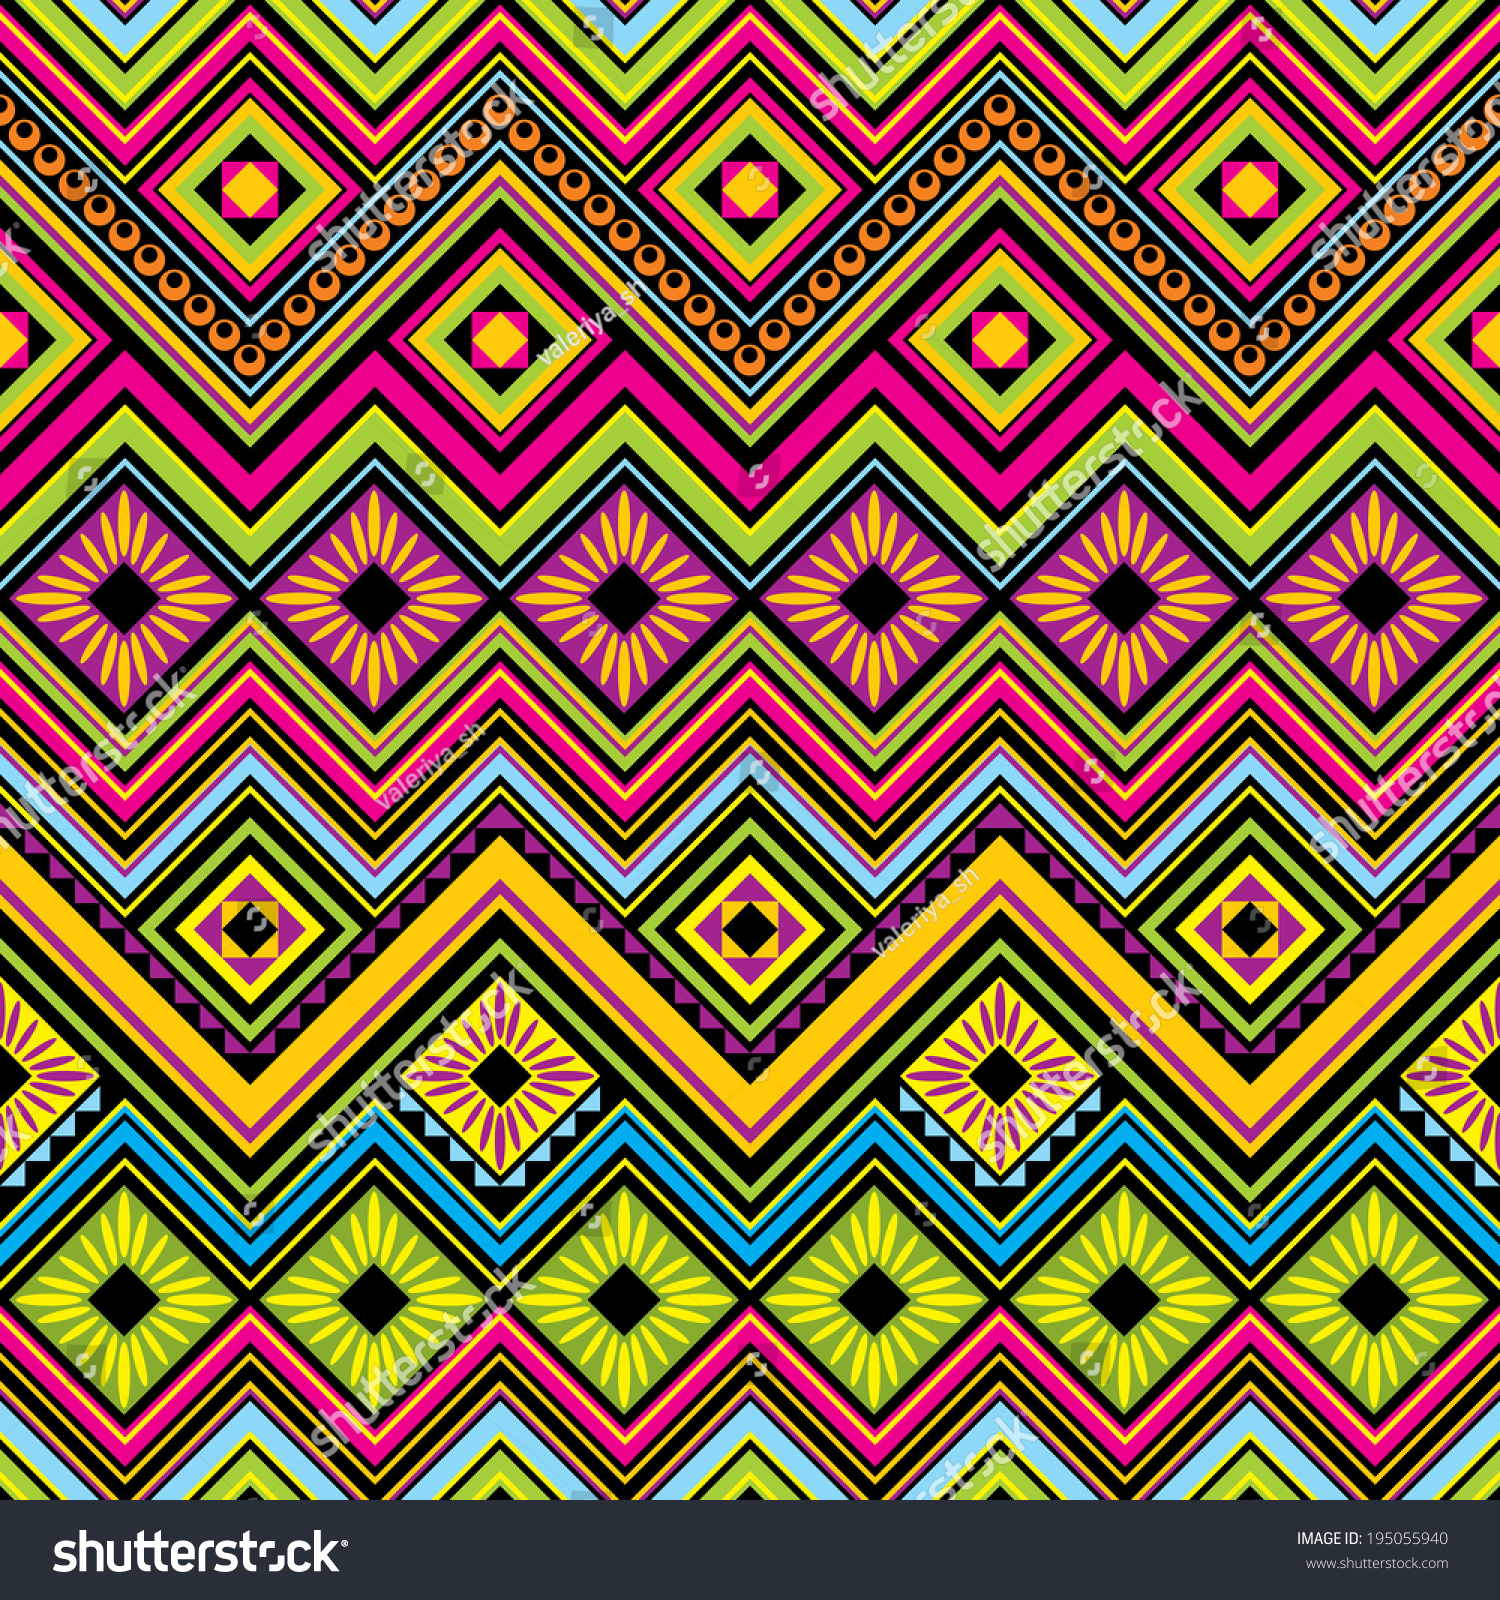 Background geometric mexican patterns seamless vector zigzag maya - Vector Seamless Background With Mexican Zigzag Geometric Patterns